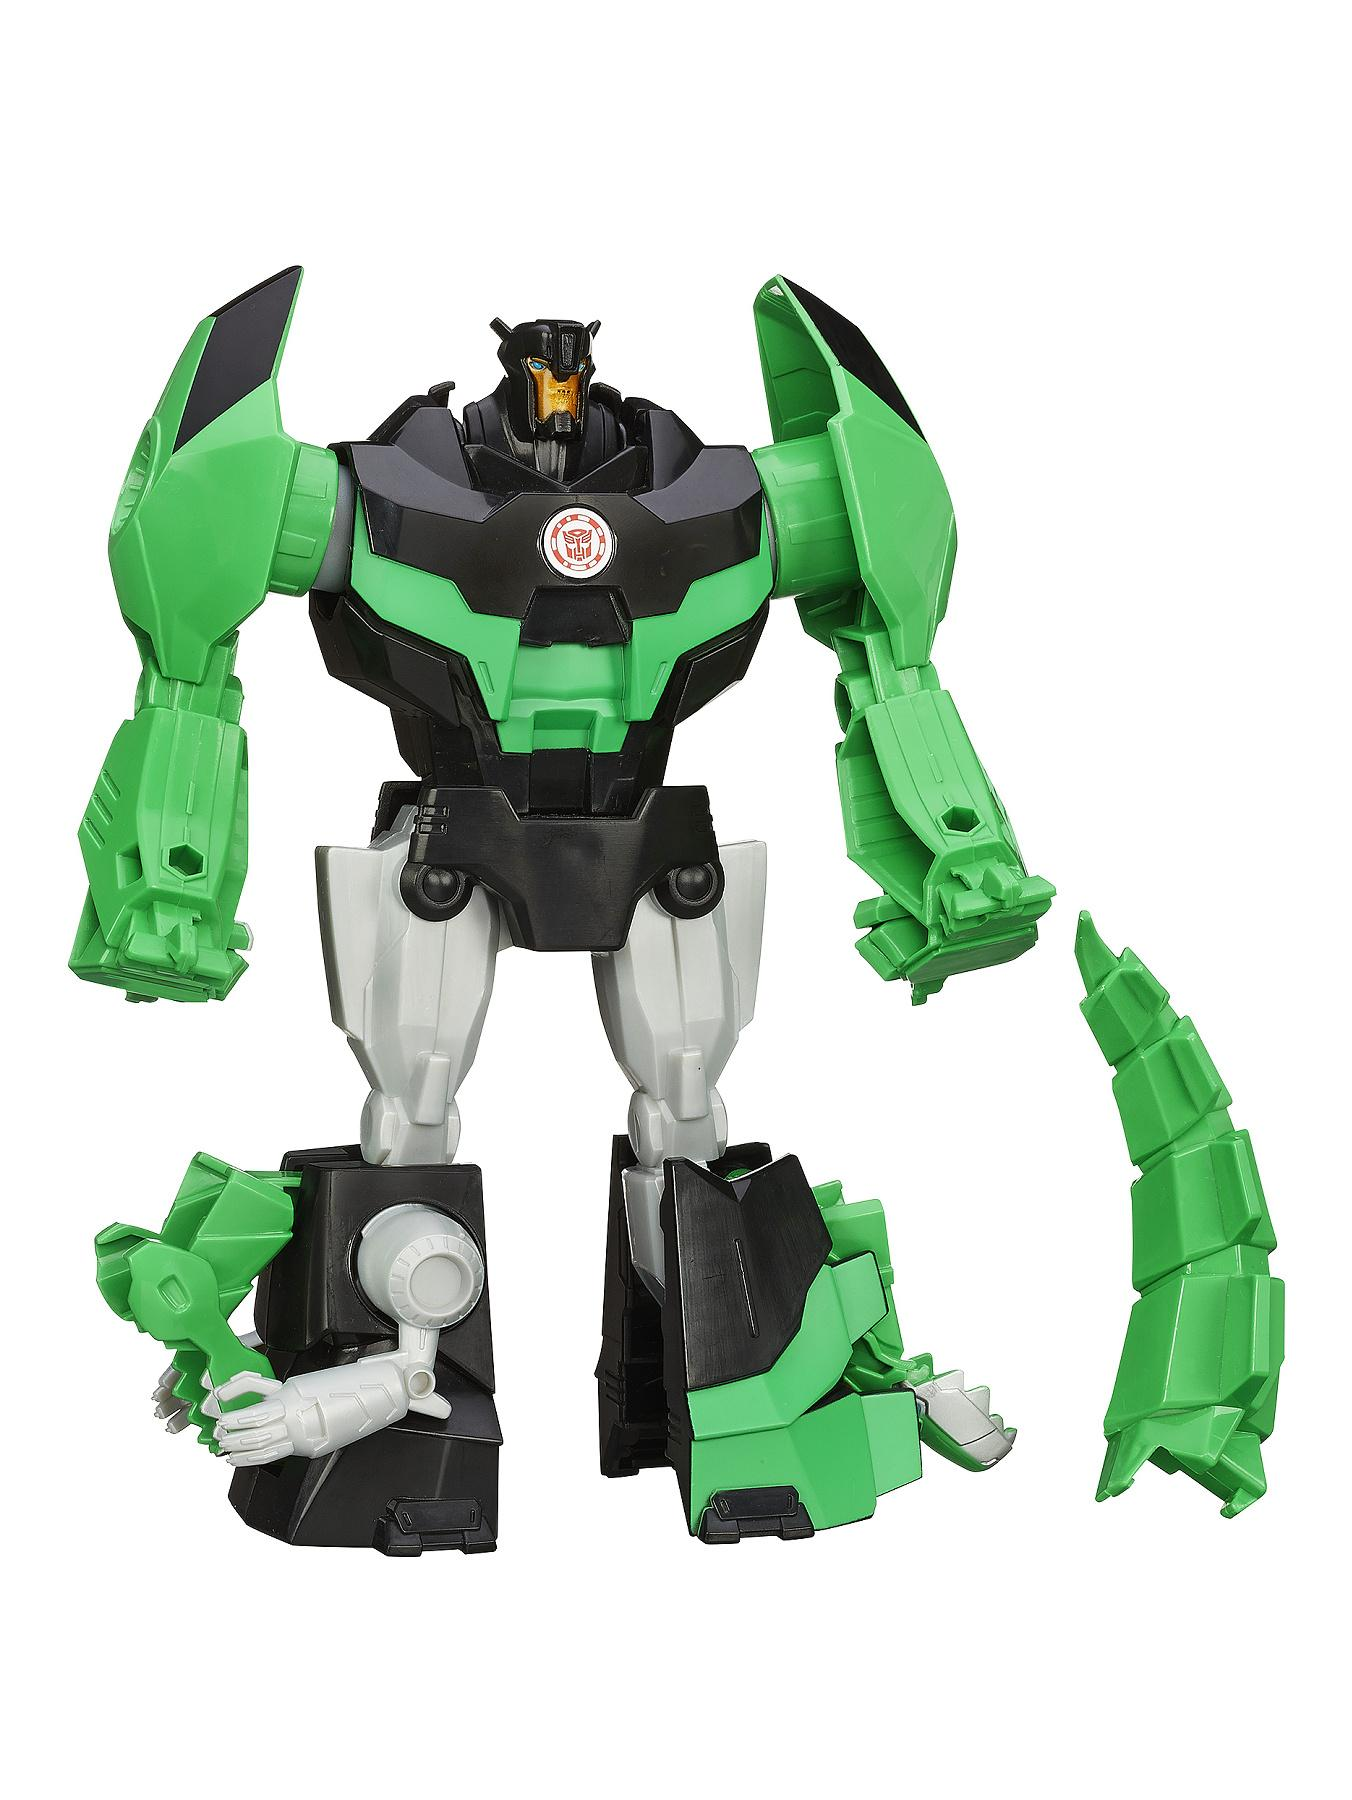 Transformers Robots in Disguise Hyper Change Heroes - Grimlock